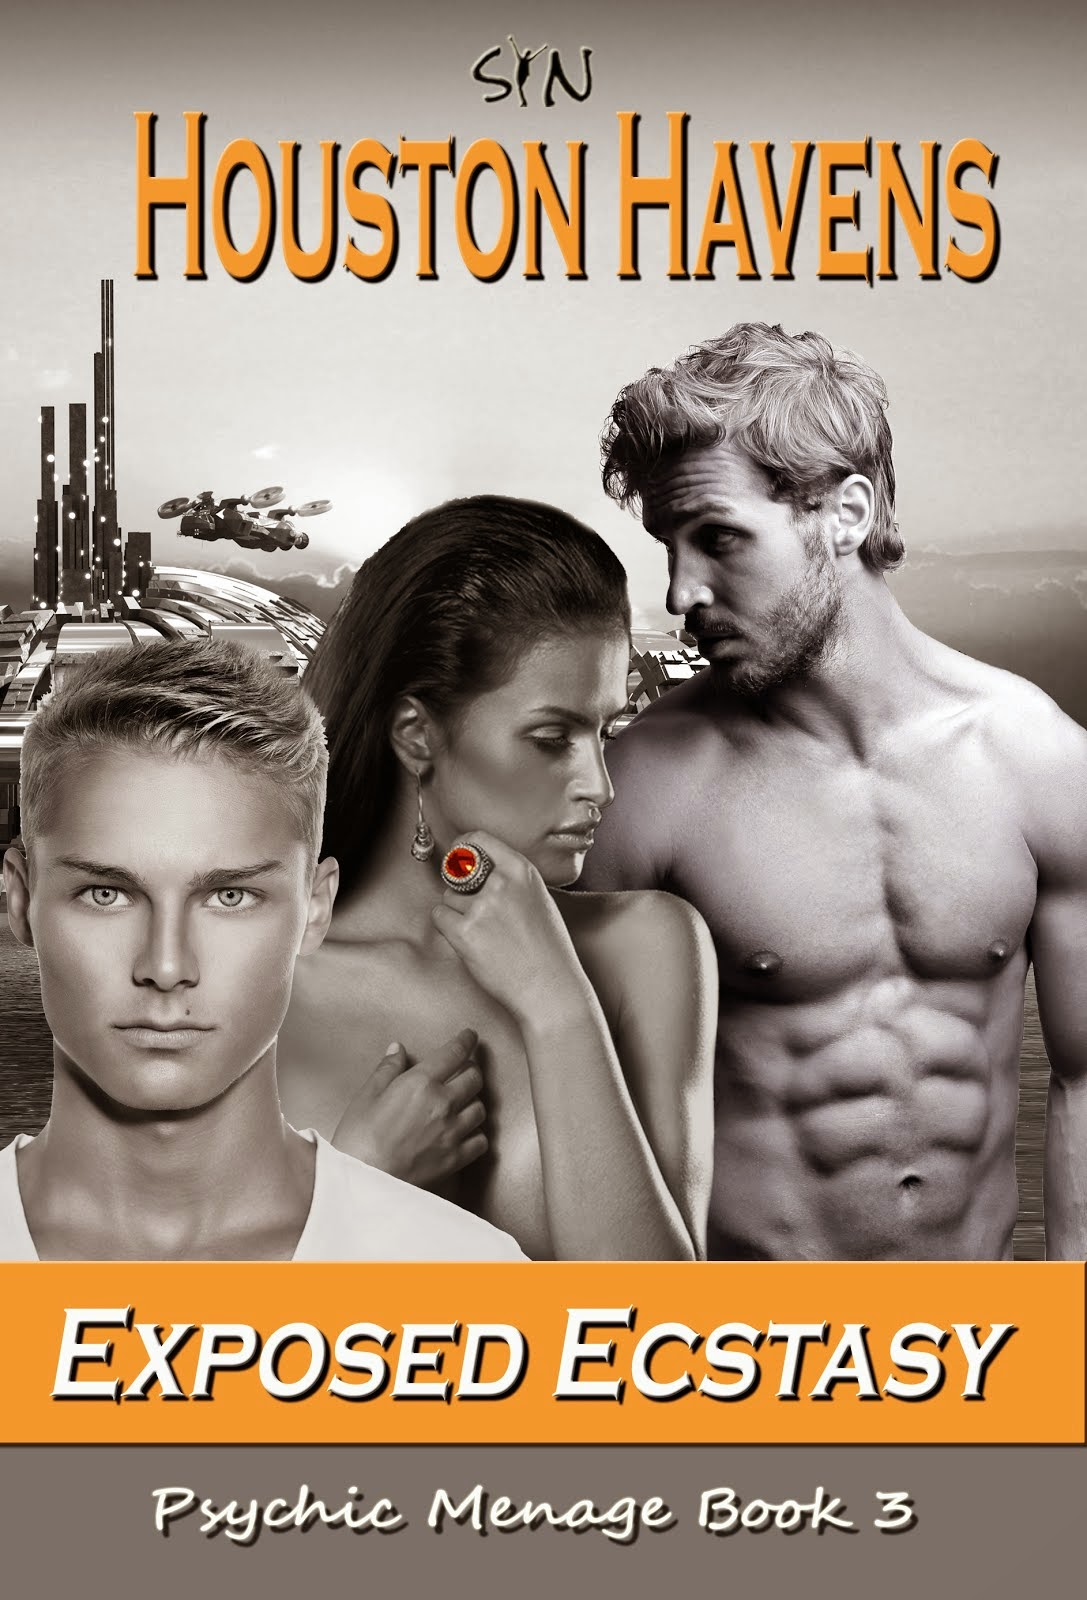 Book 3 in the Houston Havens Series Psychic Menage  is OUT!